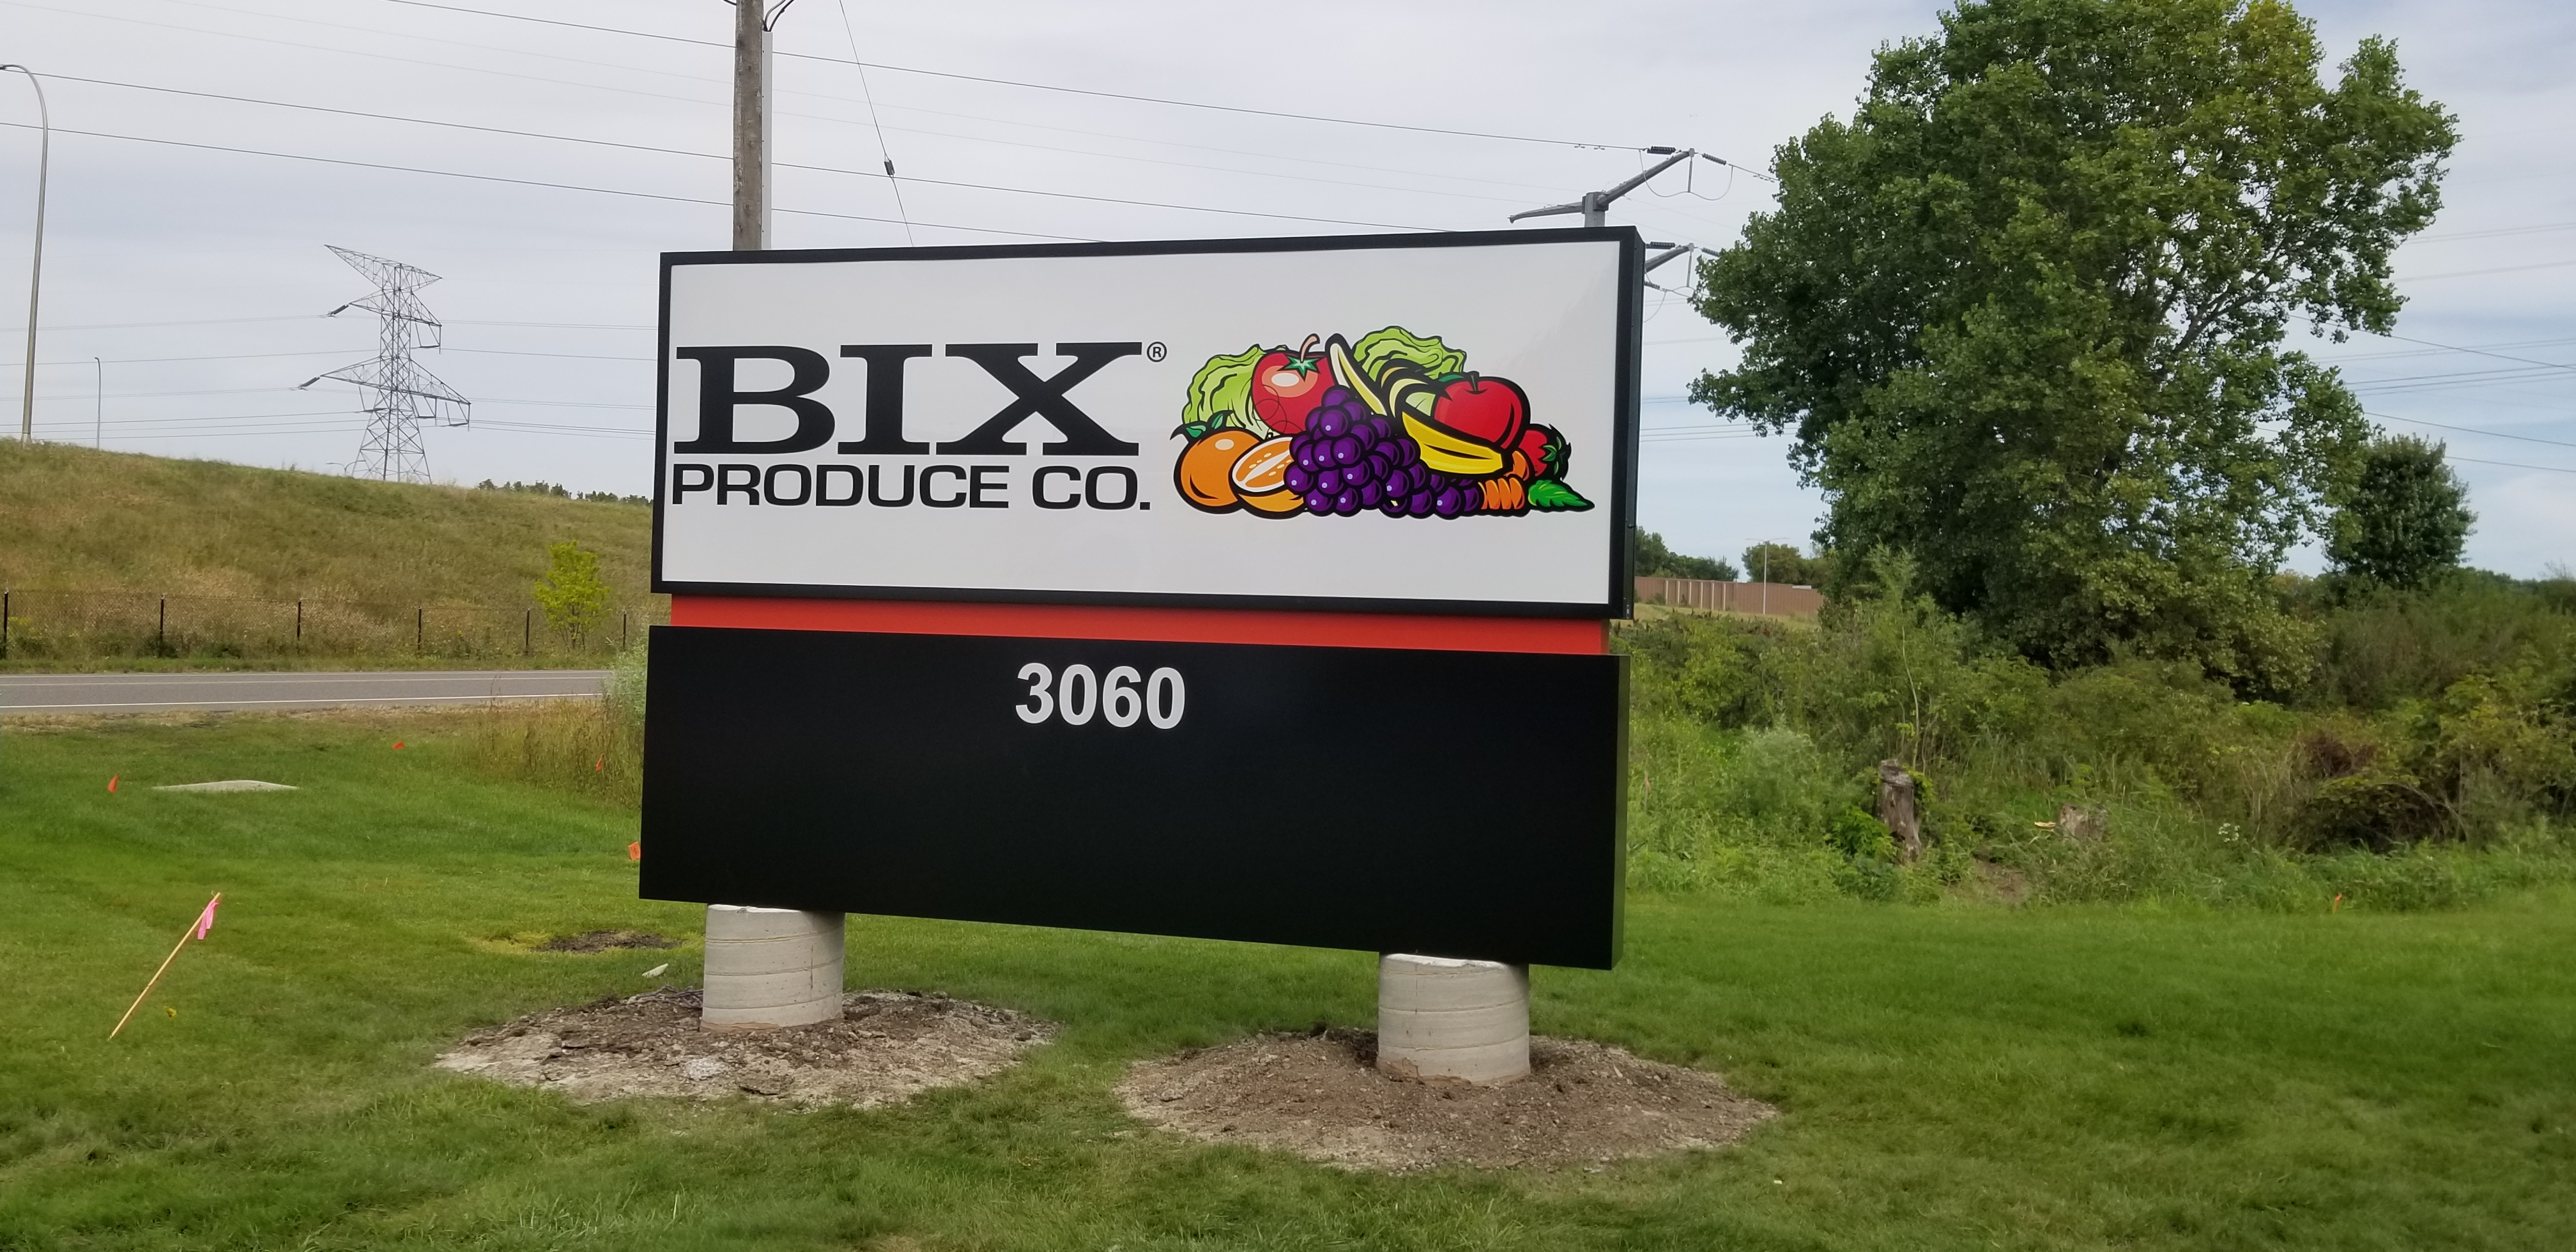 Bix Produce Co.